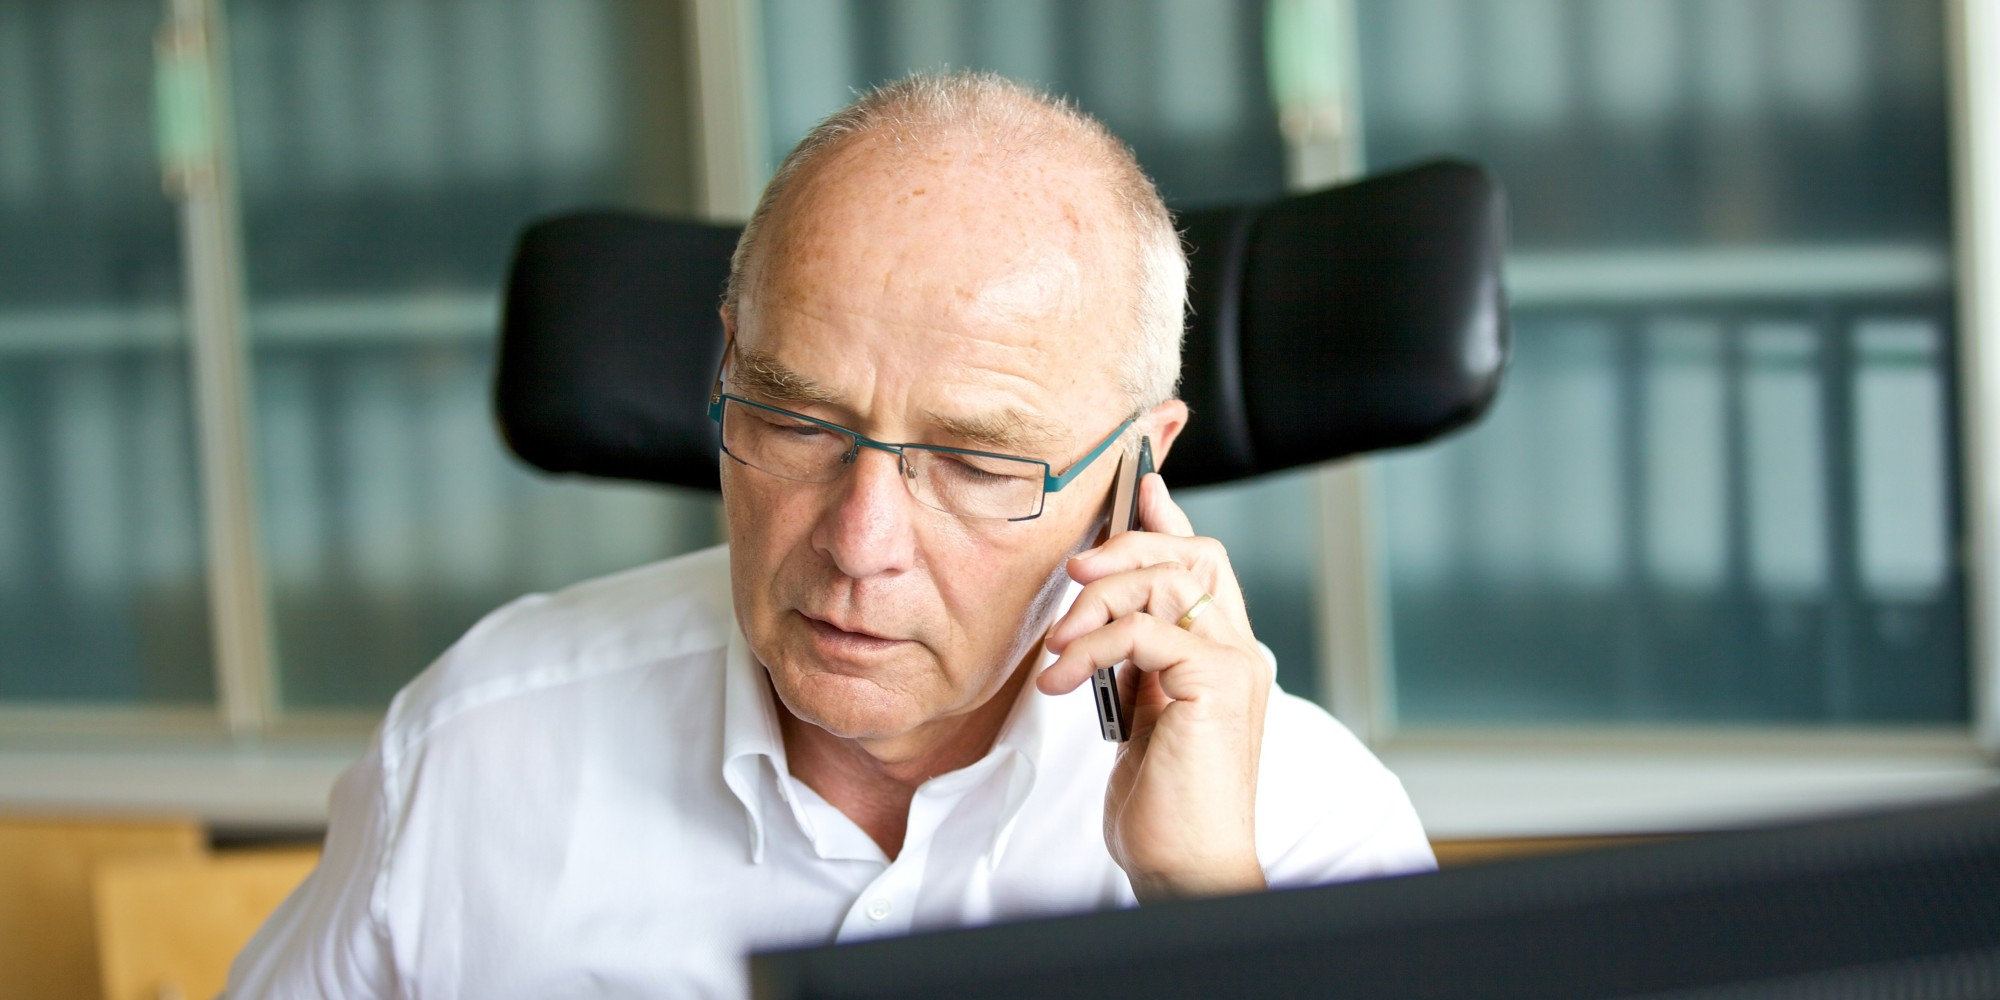 Senior man on cell phone in home office